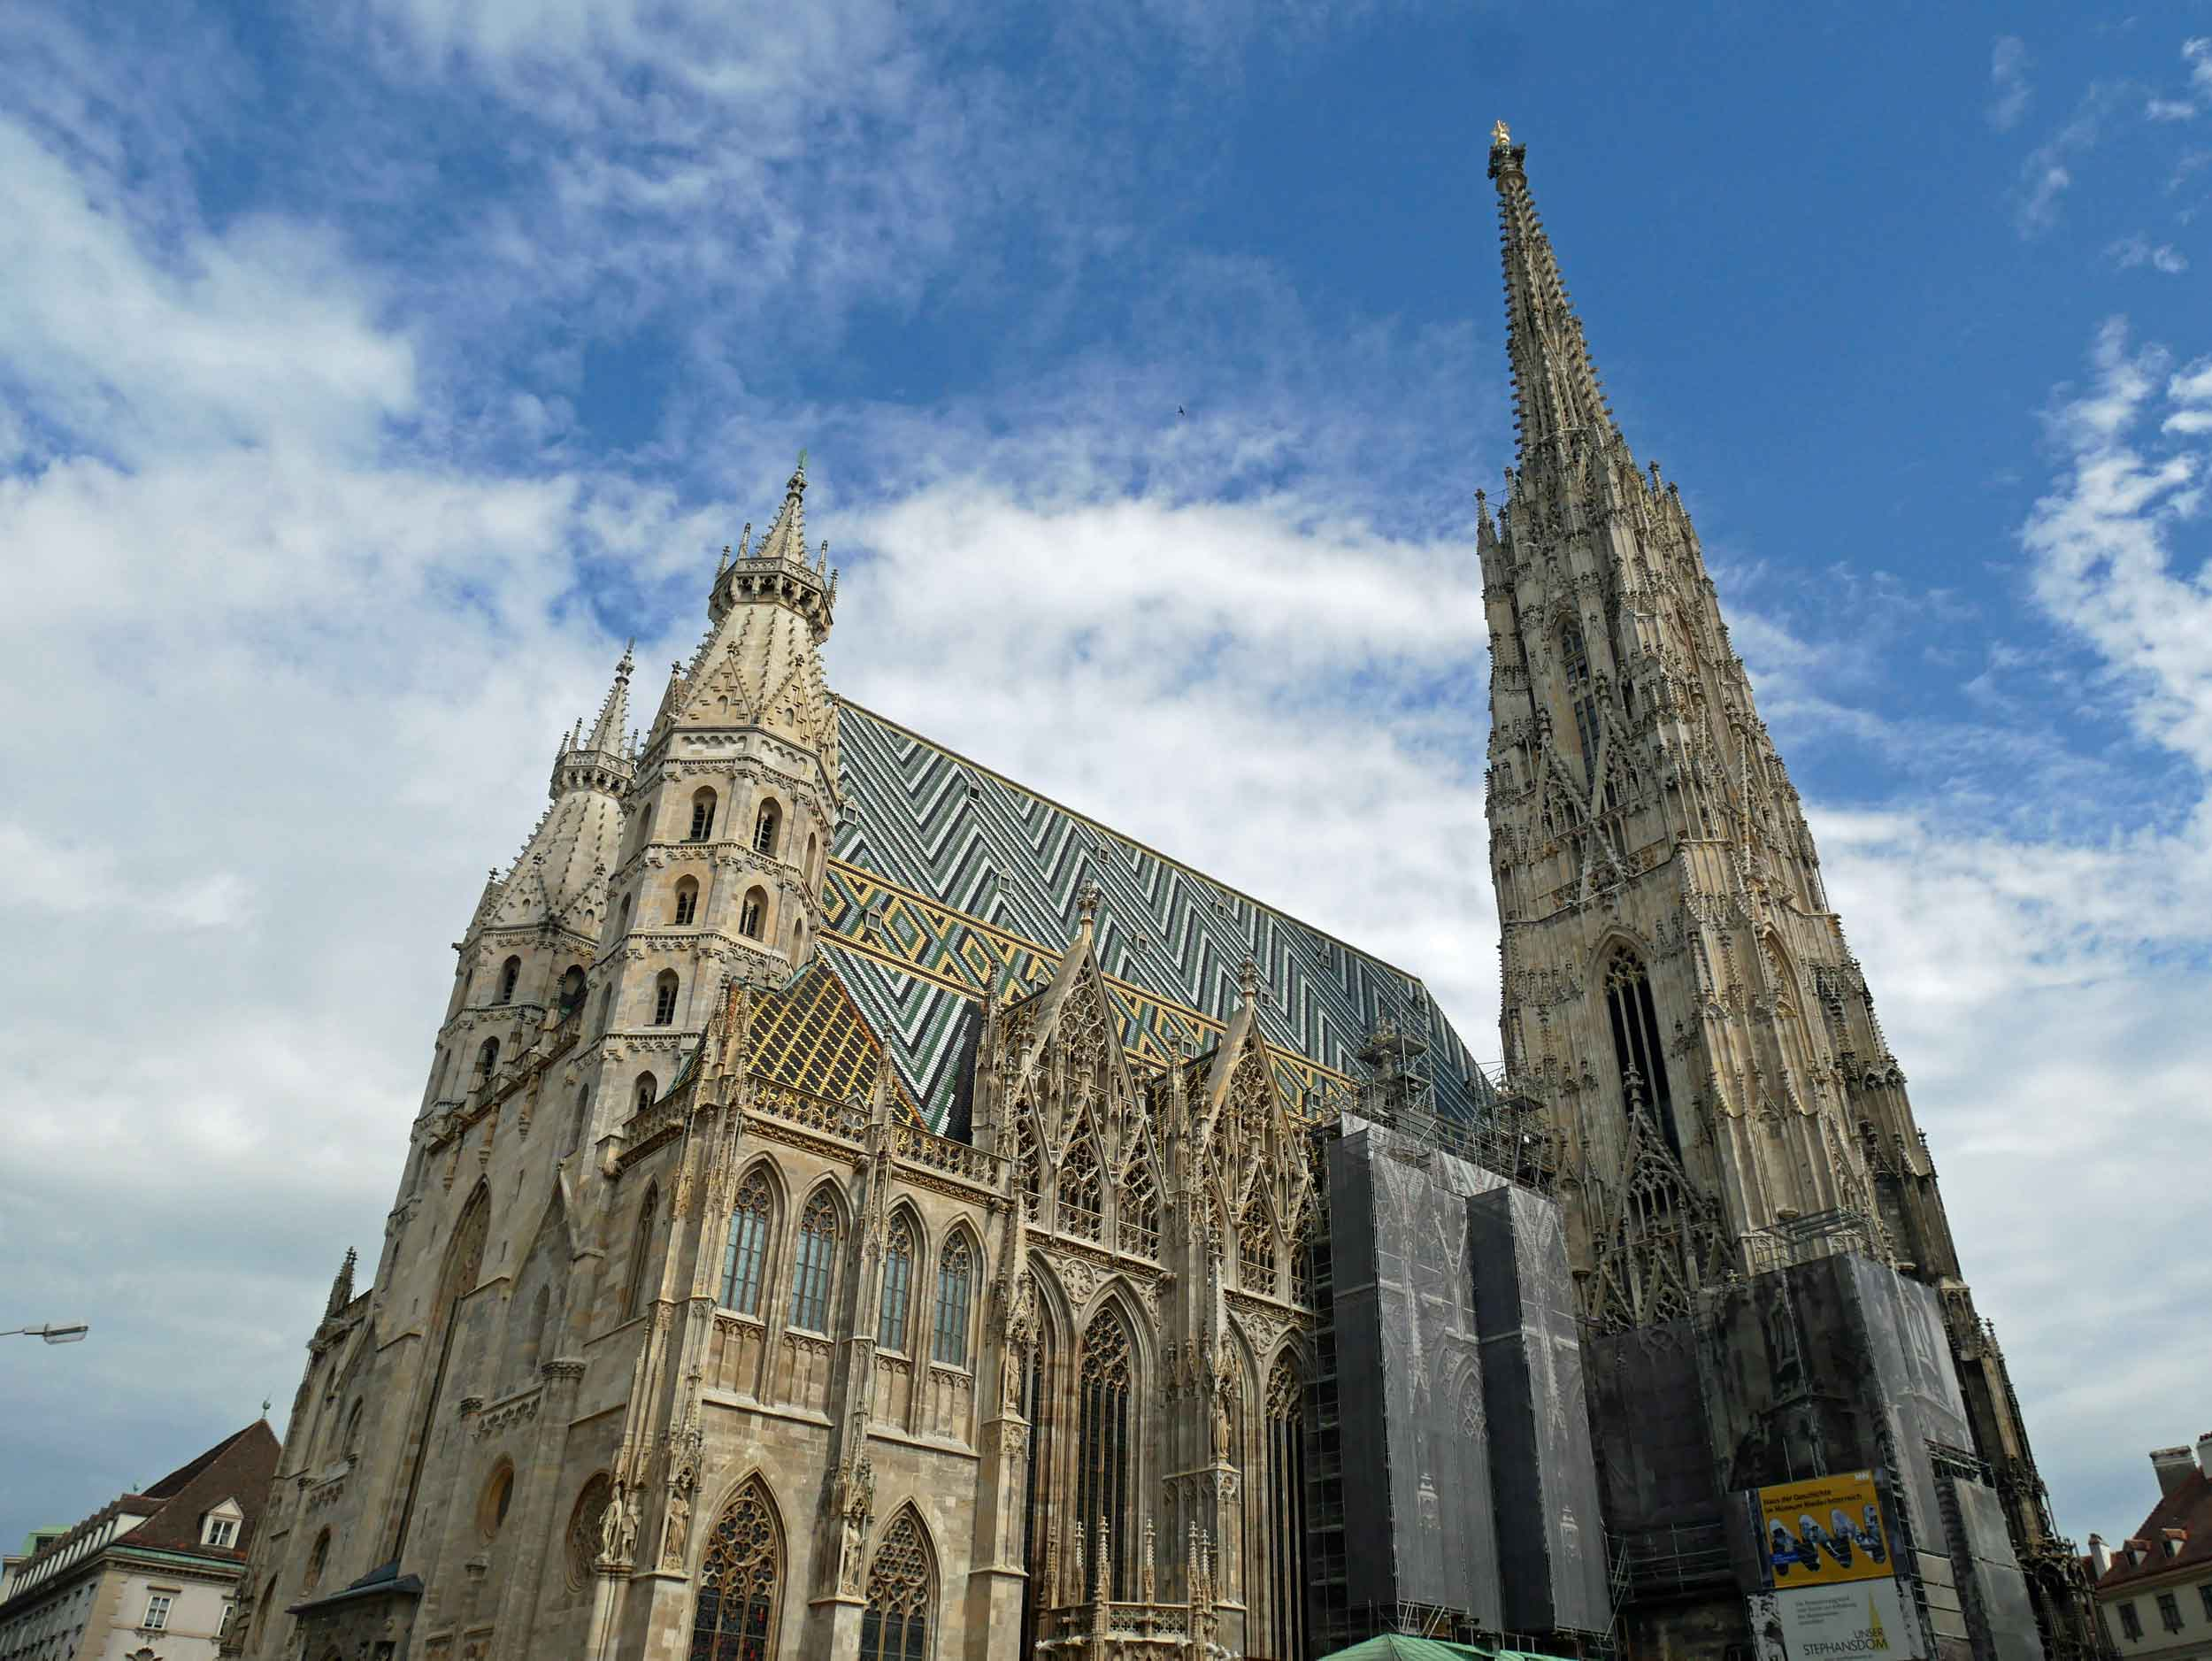 St. Stephen's Cathedral, the seat of the Archbishop of Vienna,is found in the city's old town – the tile work on the roof is awe-inspiring!